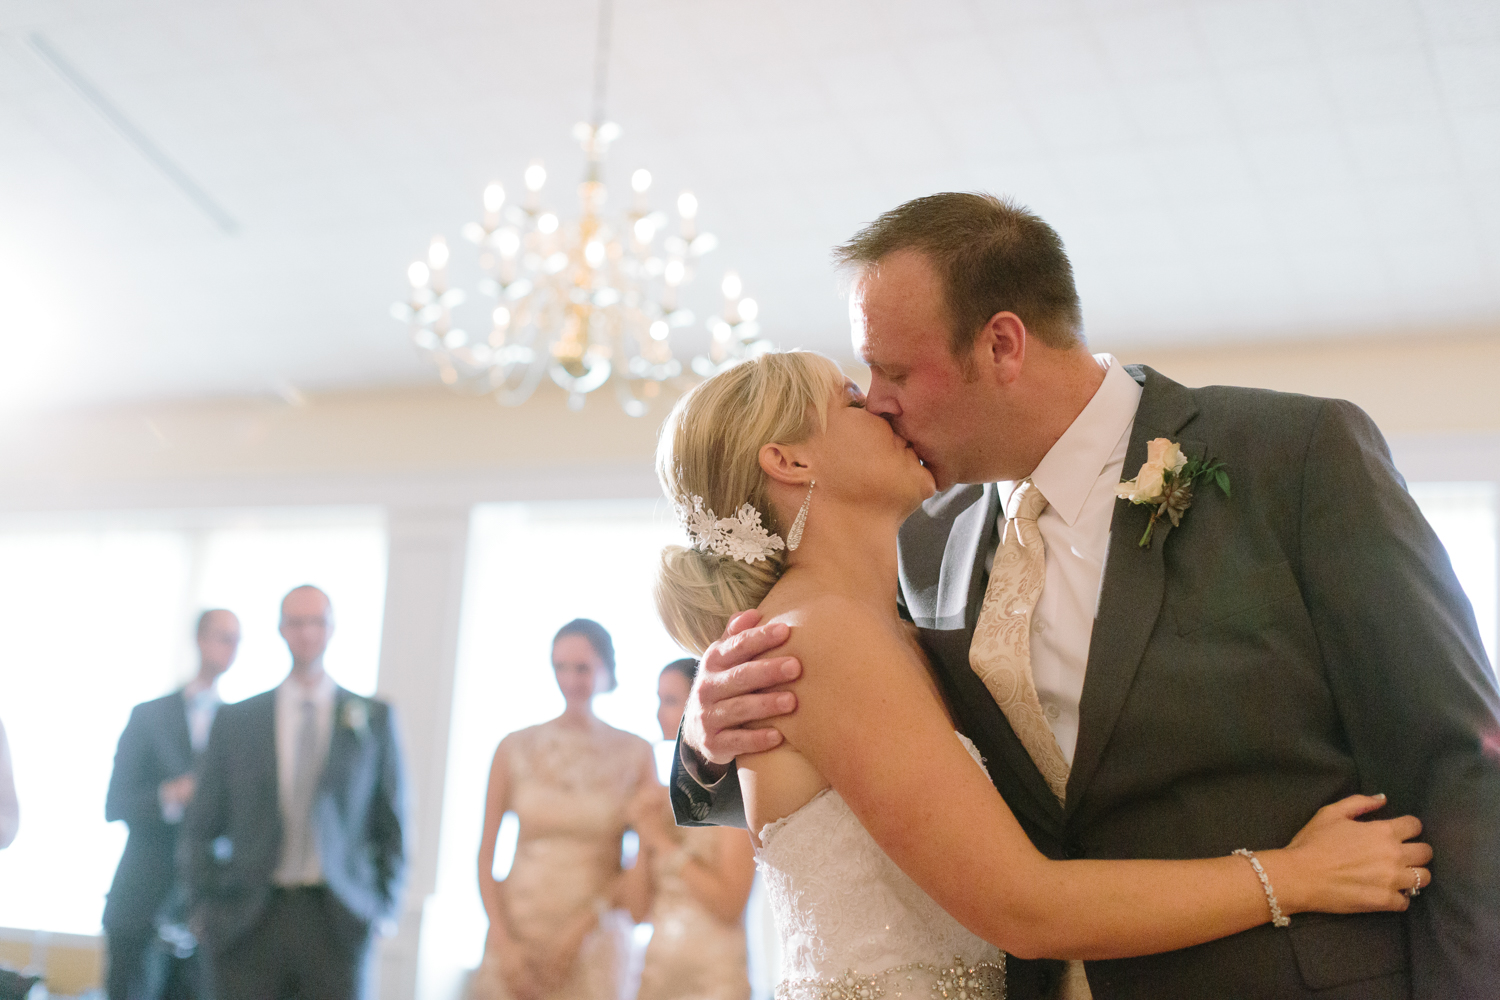 BridalPulse - Golf Lovers' Country Club Wedding - bride and groom kiss at wedding reception